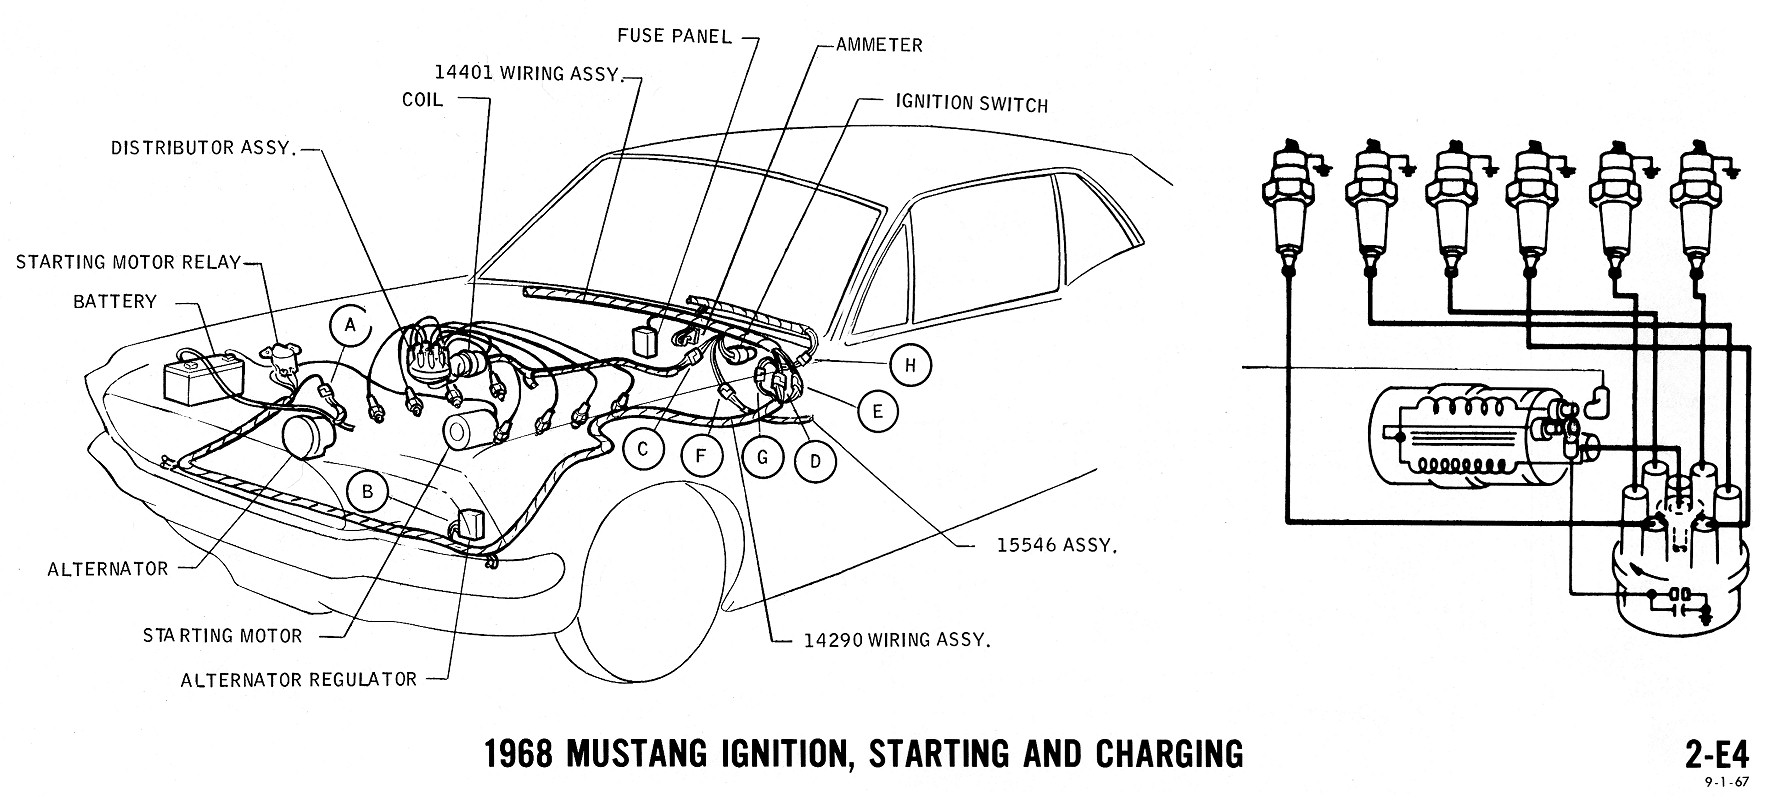 hight resolution of 1968 mustang wiring diagrams and vacuum schematics mustangs plus restomod 2006 mustang convertible modified mustang magazine